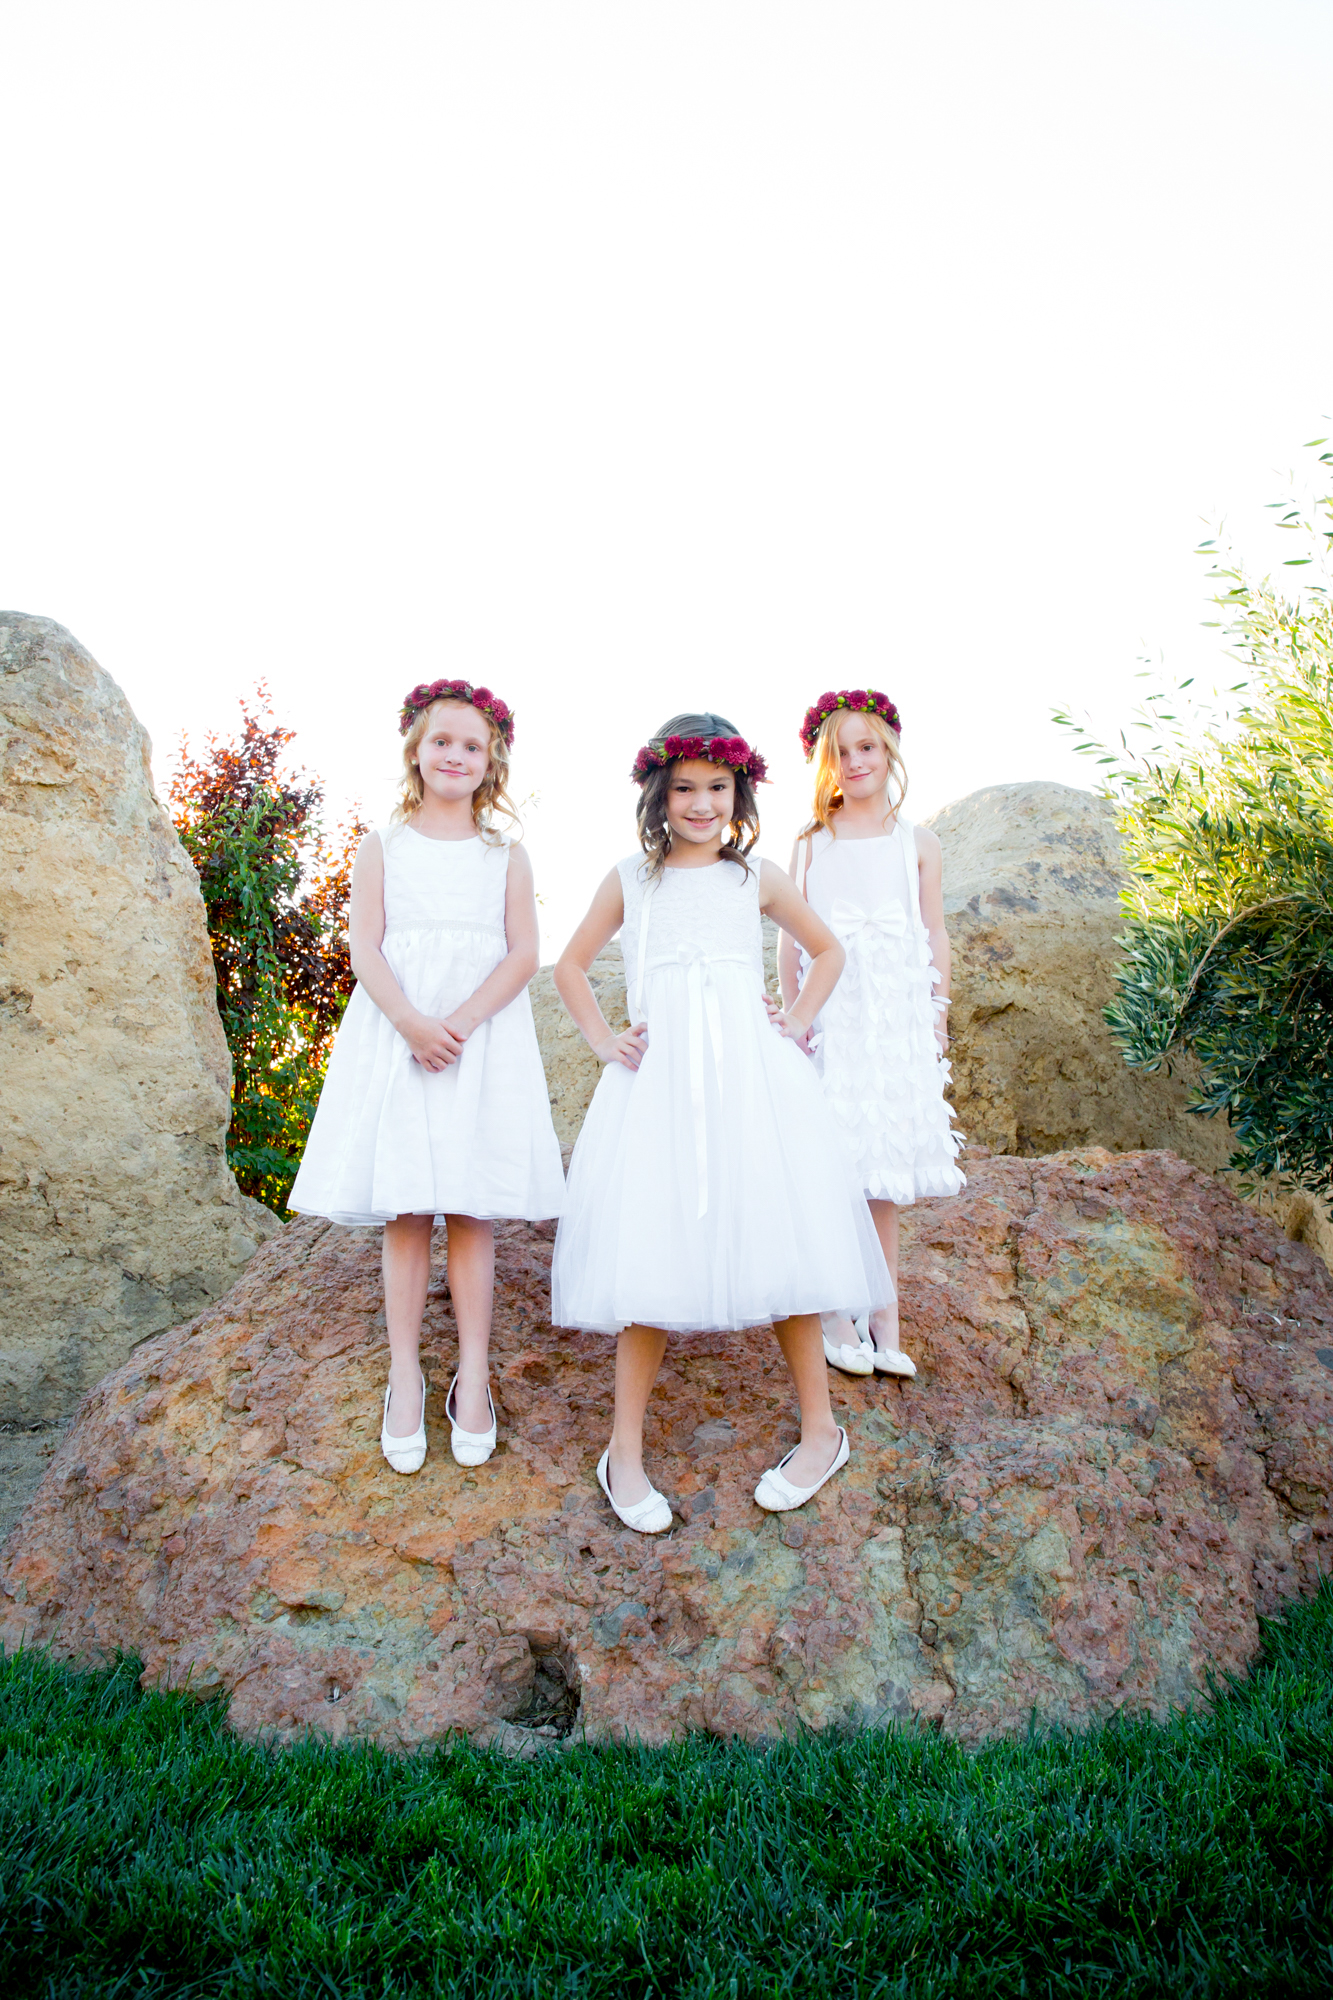 024_CarlyGaebe_SteadfastStudio_WeddingPhotography_Malibu_LosAngeles_LA_California_Winery_Hilltop_CieloFarms_Kids_FlowerGirls_Vineyard.jpg